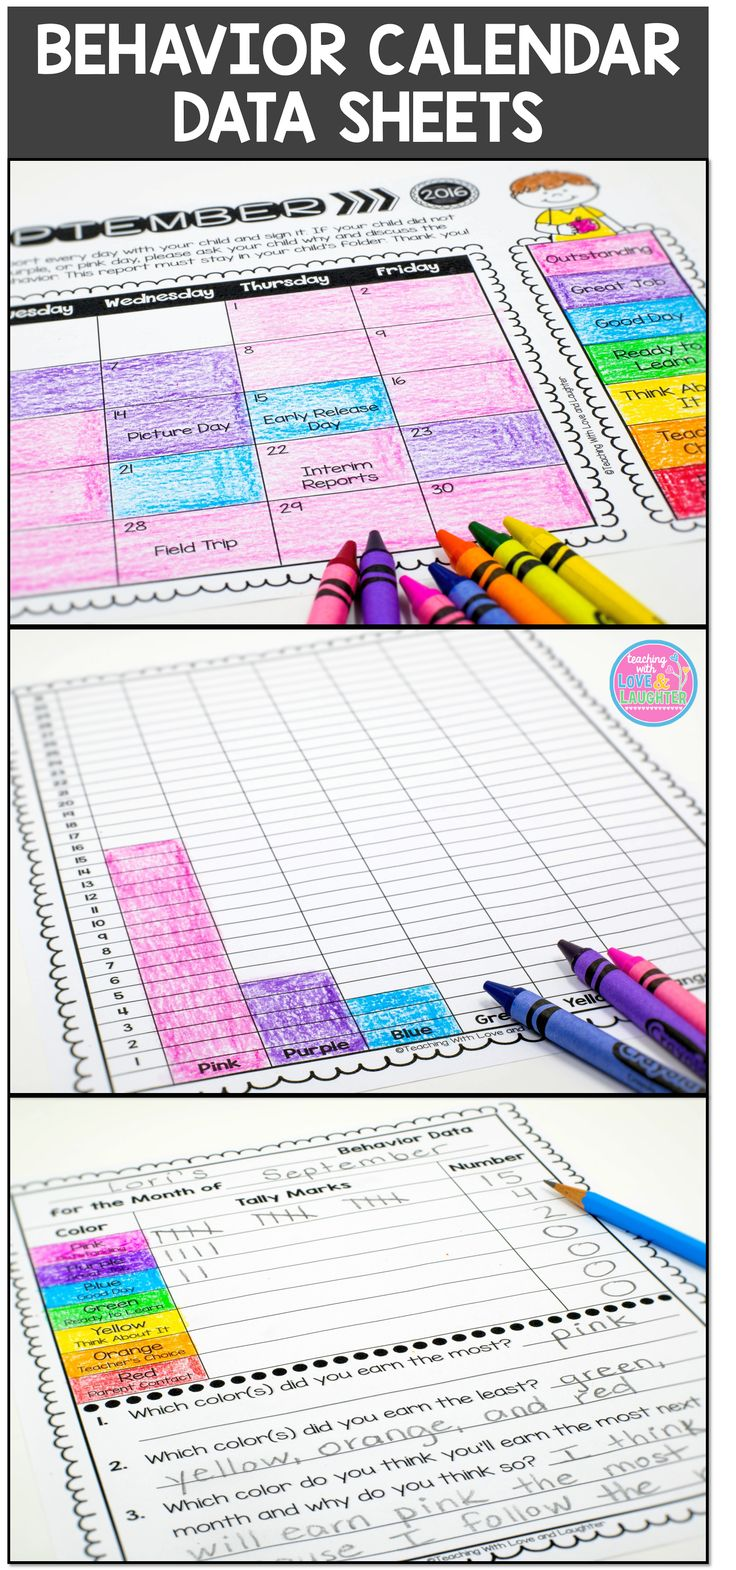 17 best ideas about behavior reflection sheet this is editable ed behavior calendar data sheets that you and your child can use for home and school this can be used to encourage self awareness